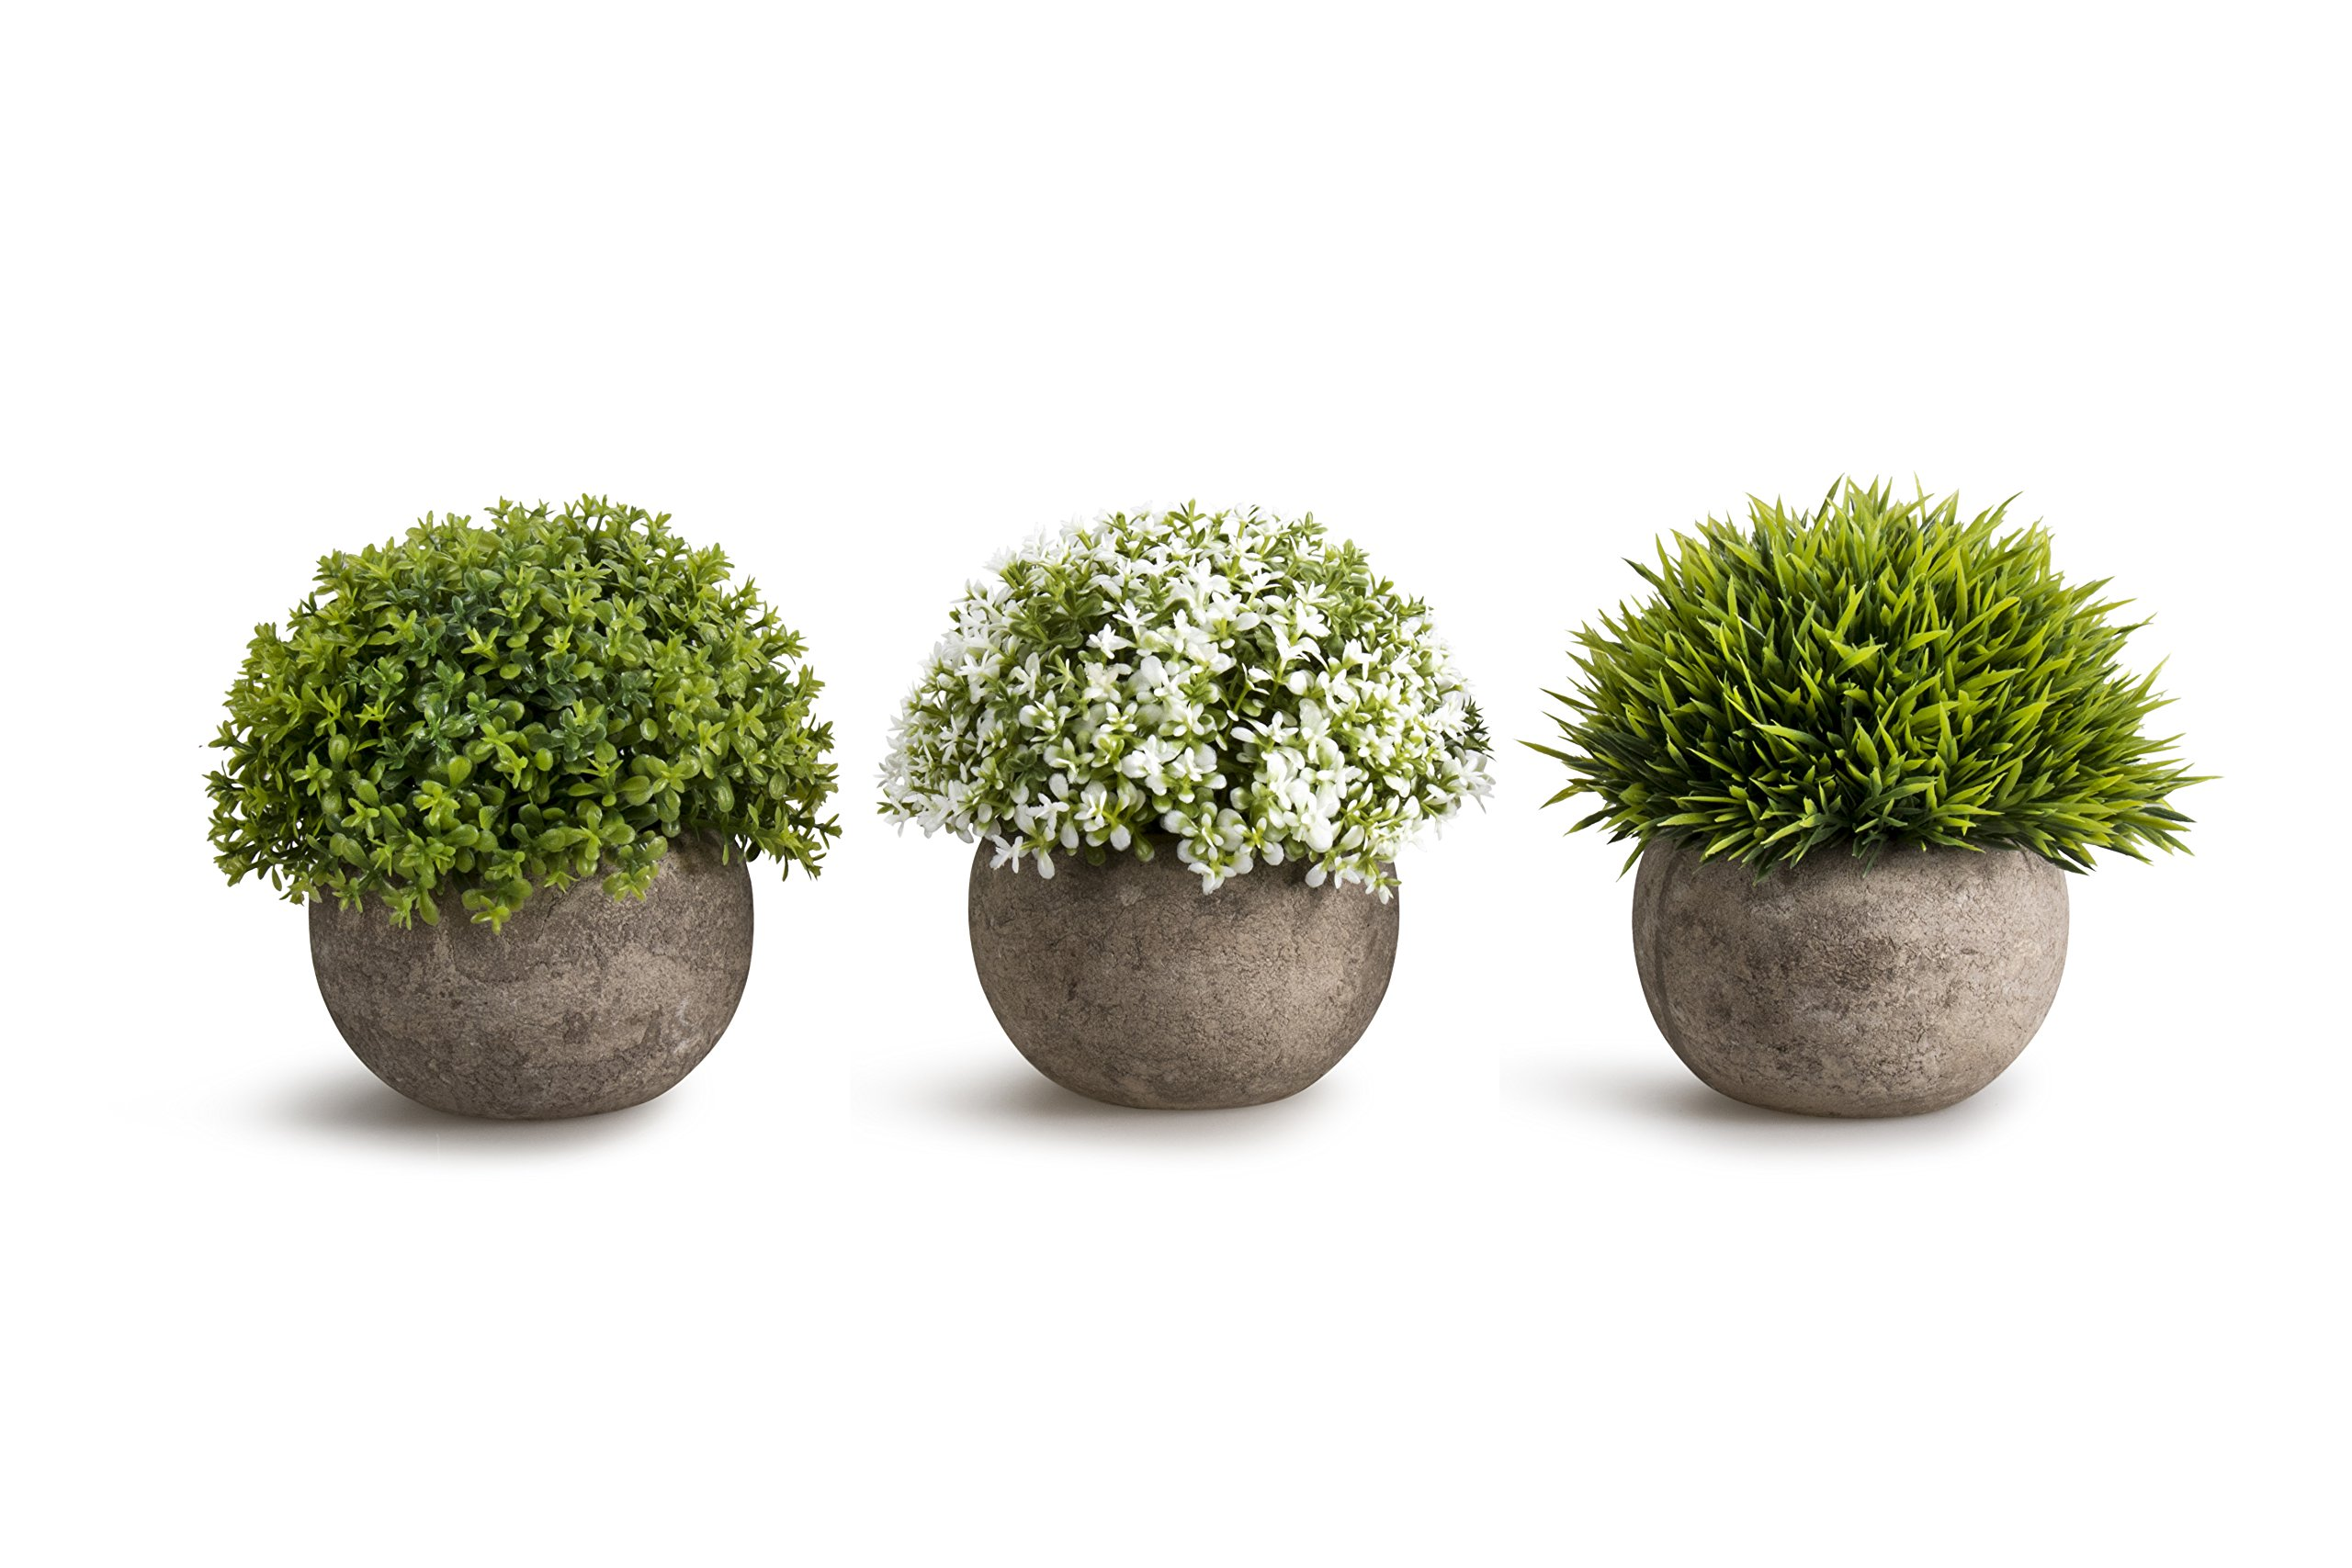 OPPS Artificial Plastic Mini Plants Unique Fake Fresh Green Grass Flower in Gray Pot for Home Décor - Set of 3 by OPPS